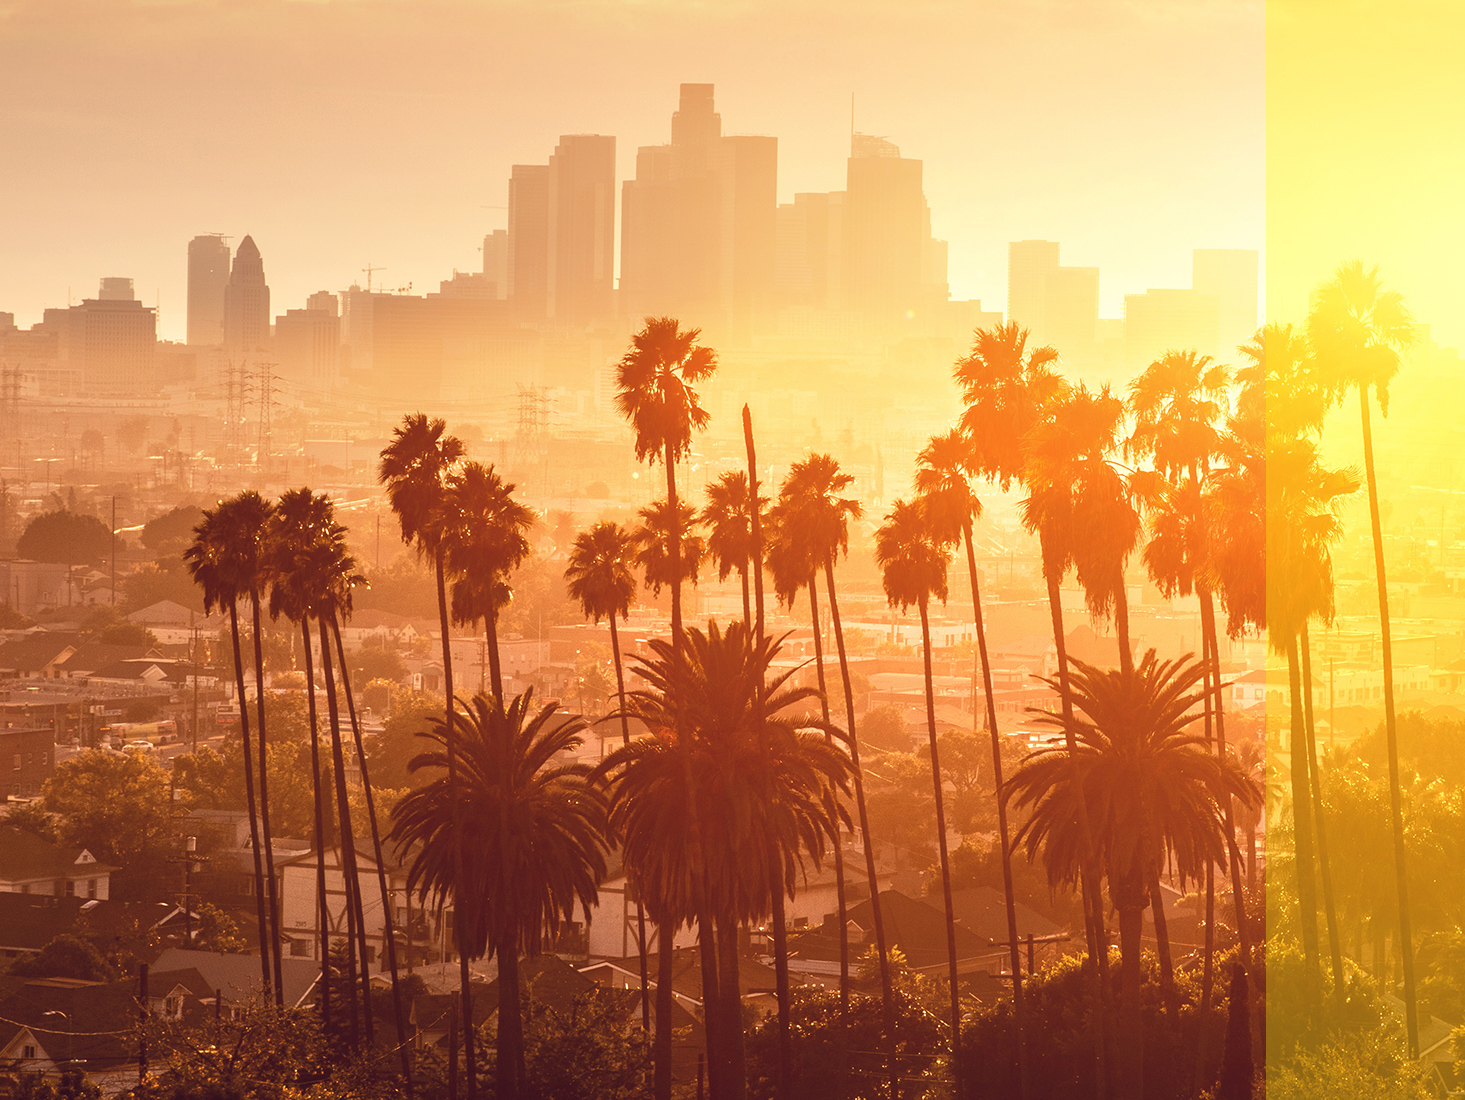 The setting sun creates a warm glow over Los Angeles.